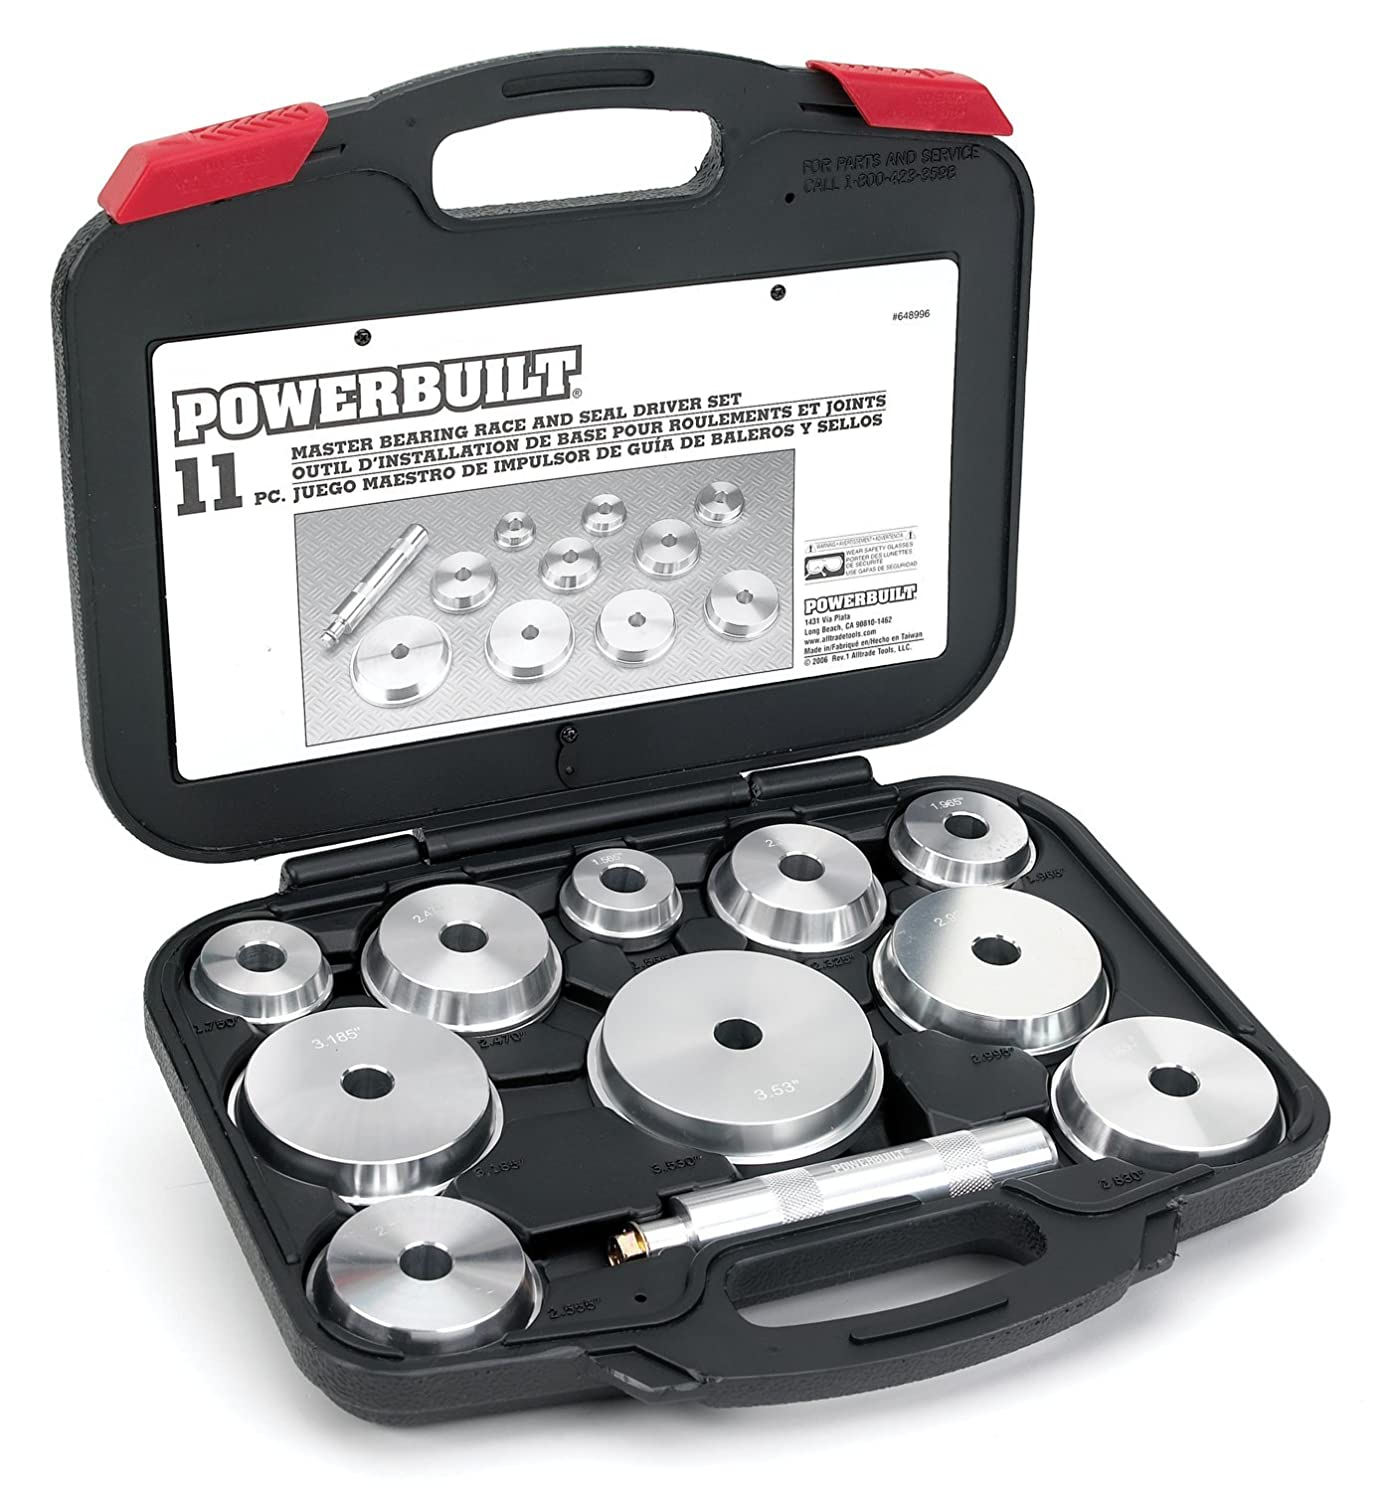 Powerbuilt Alltrade 648996 Kit 66 Master Bearing Race and Seal Driver Tool Set